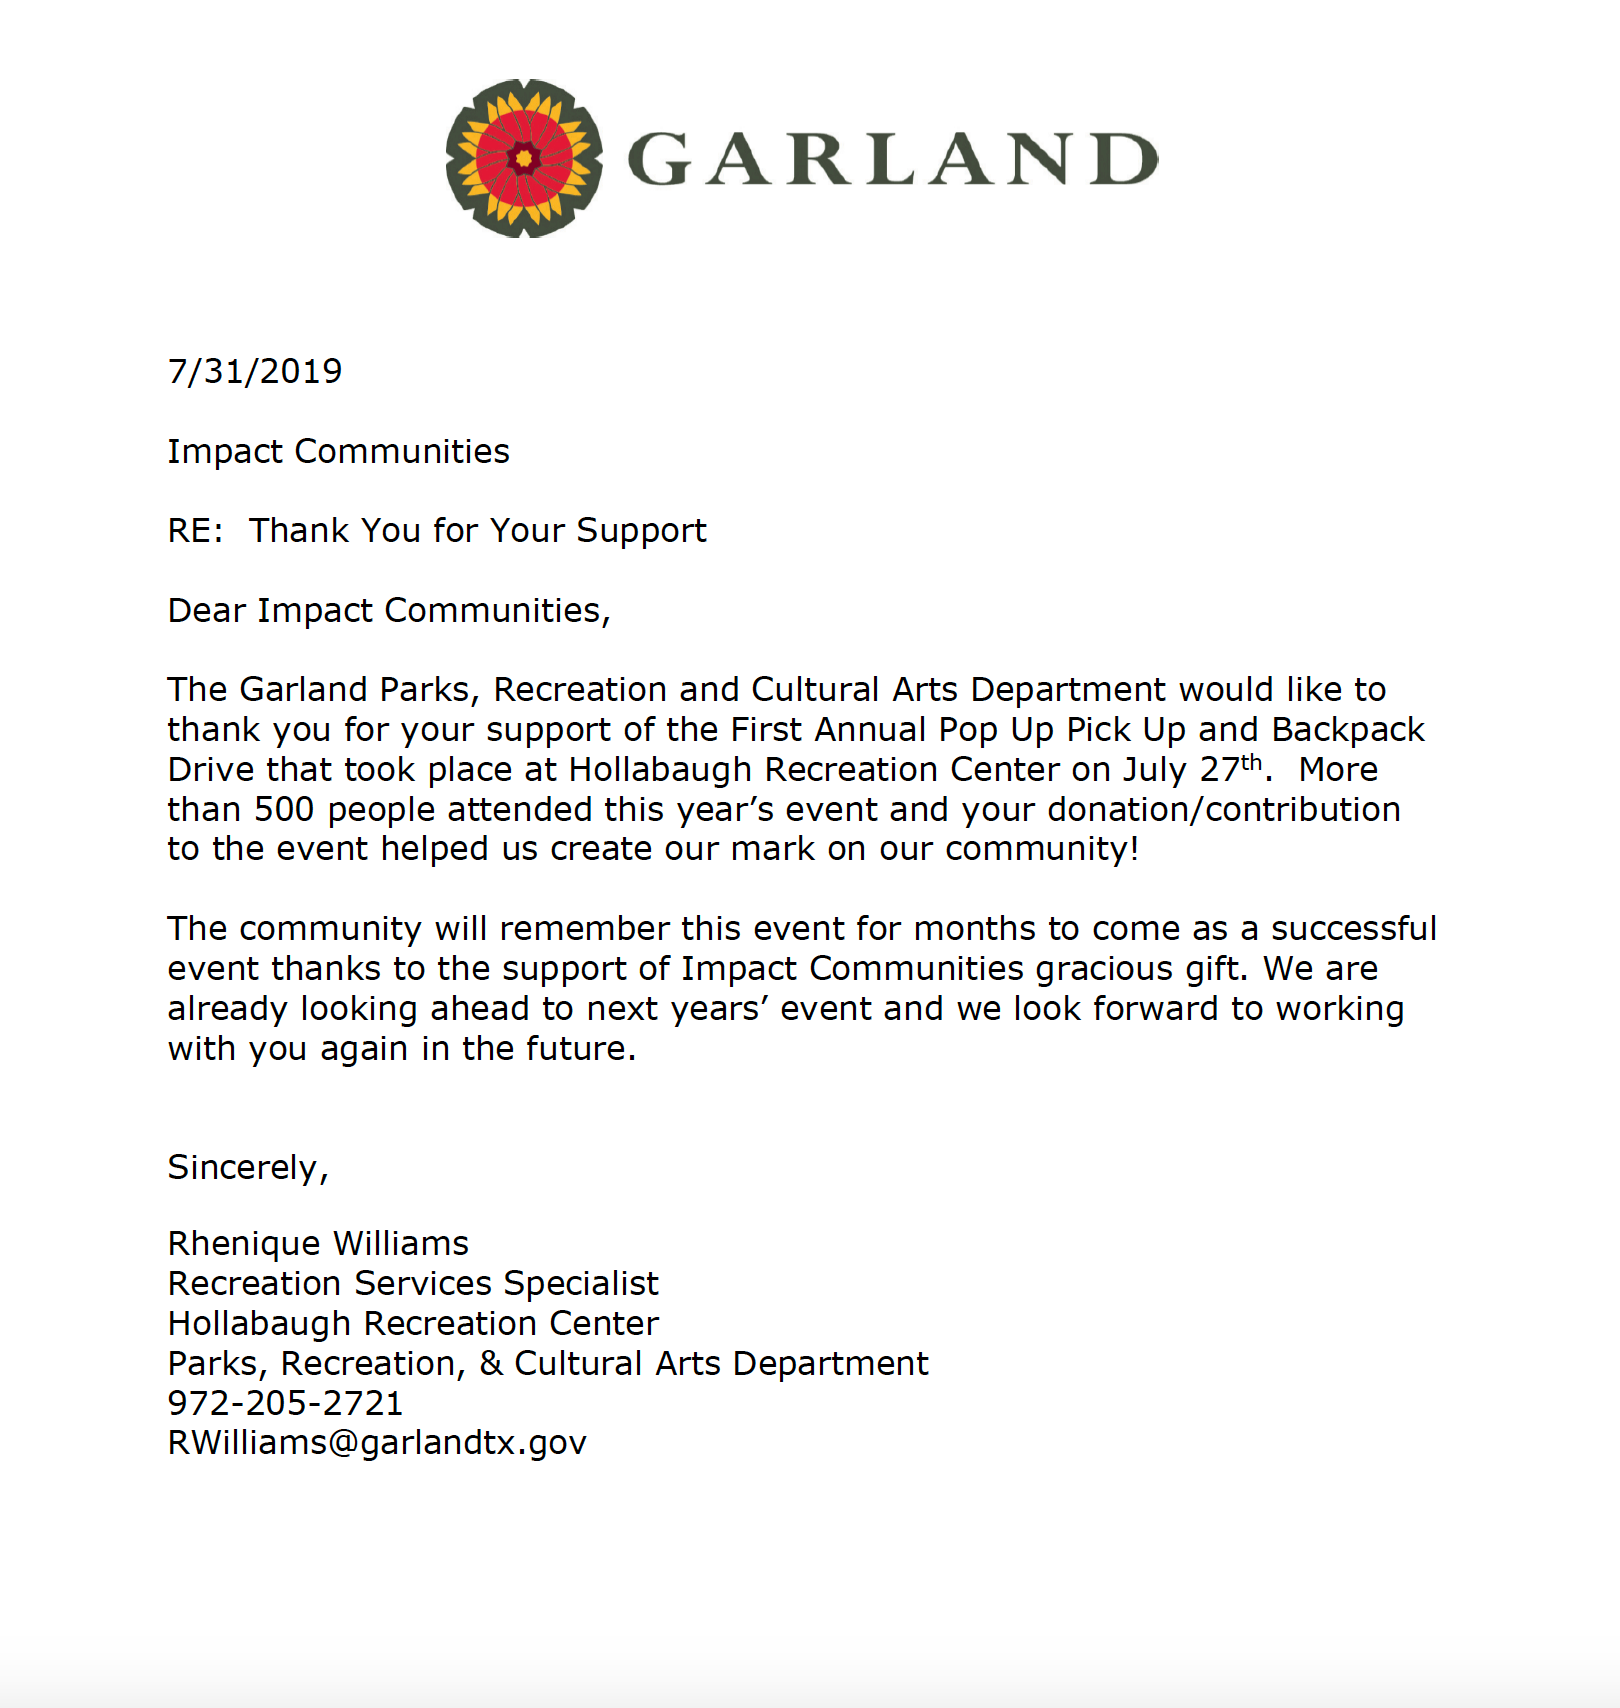 The Garland Parks, Recreation and Cultural Arts Department